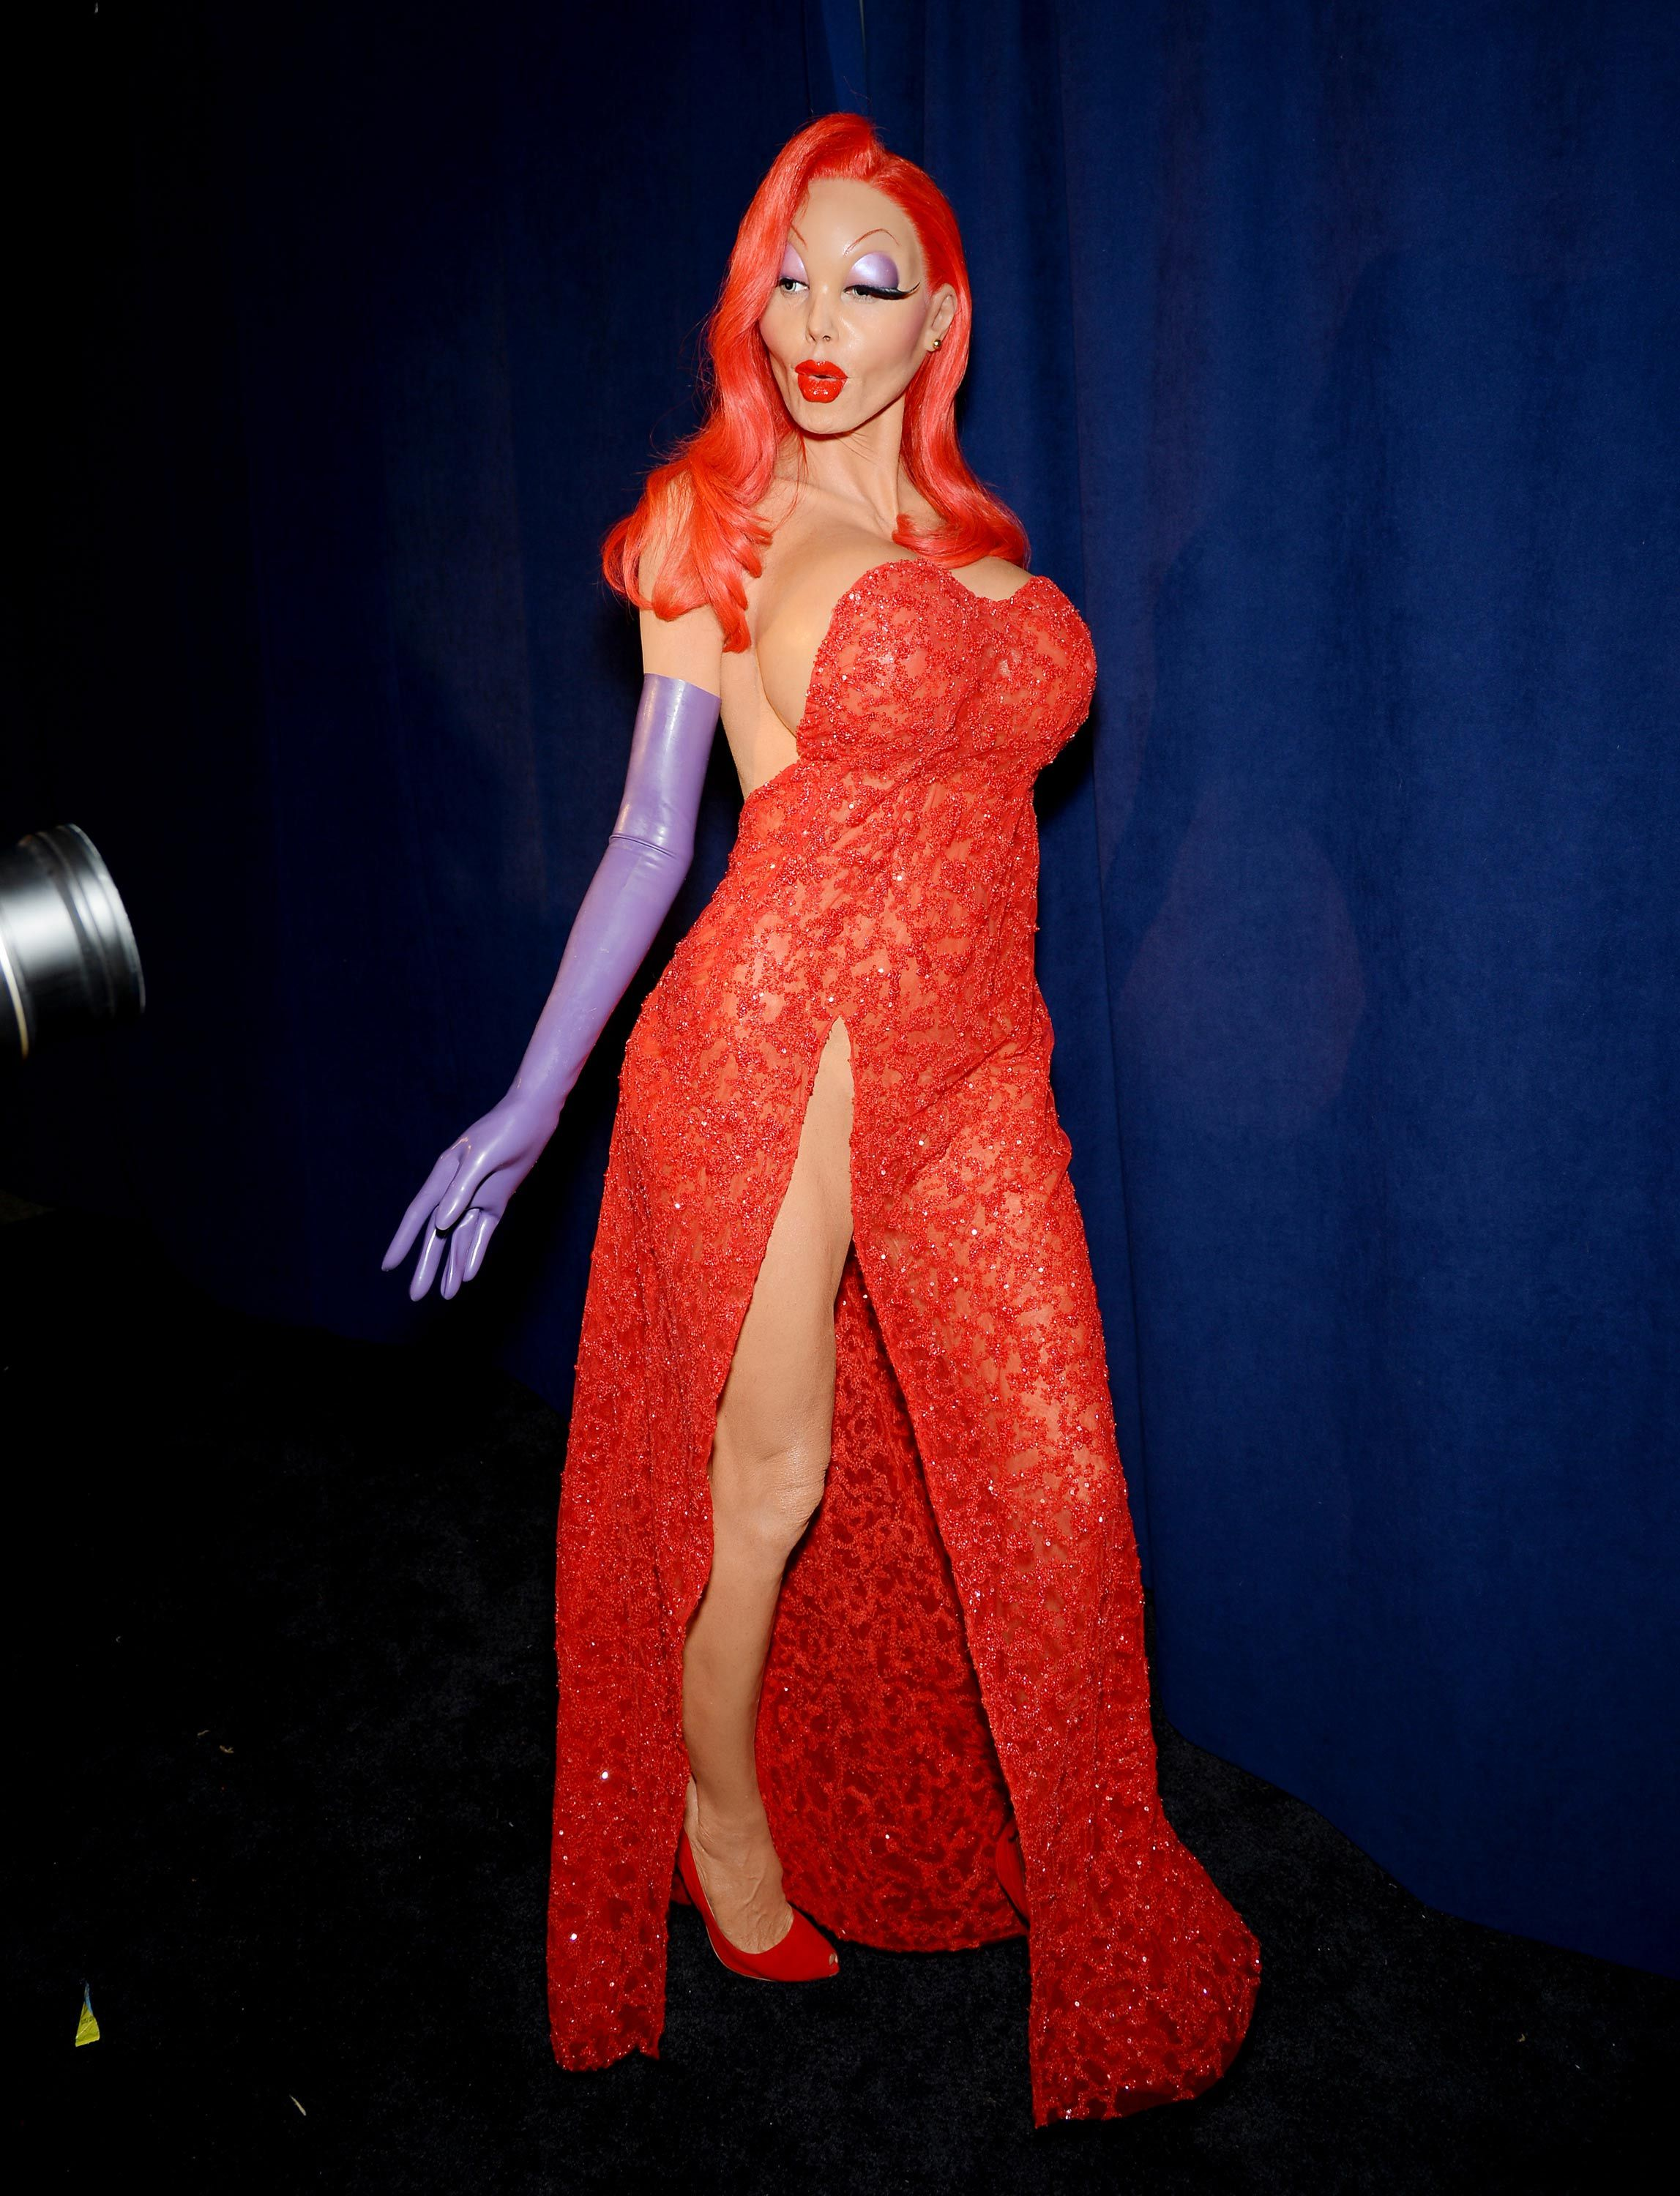 Heidi Klum Halloween Costumes Over the Years - Heidi Klum Halloween Party Costumes  sc 1 st  Cosmopolitan & Heidi Klum Halloween Costumes Over the Years - Heidi Klum Halloween ...